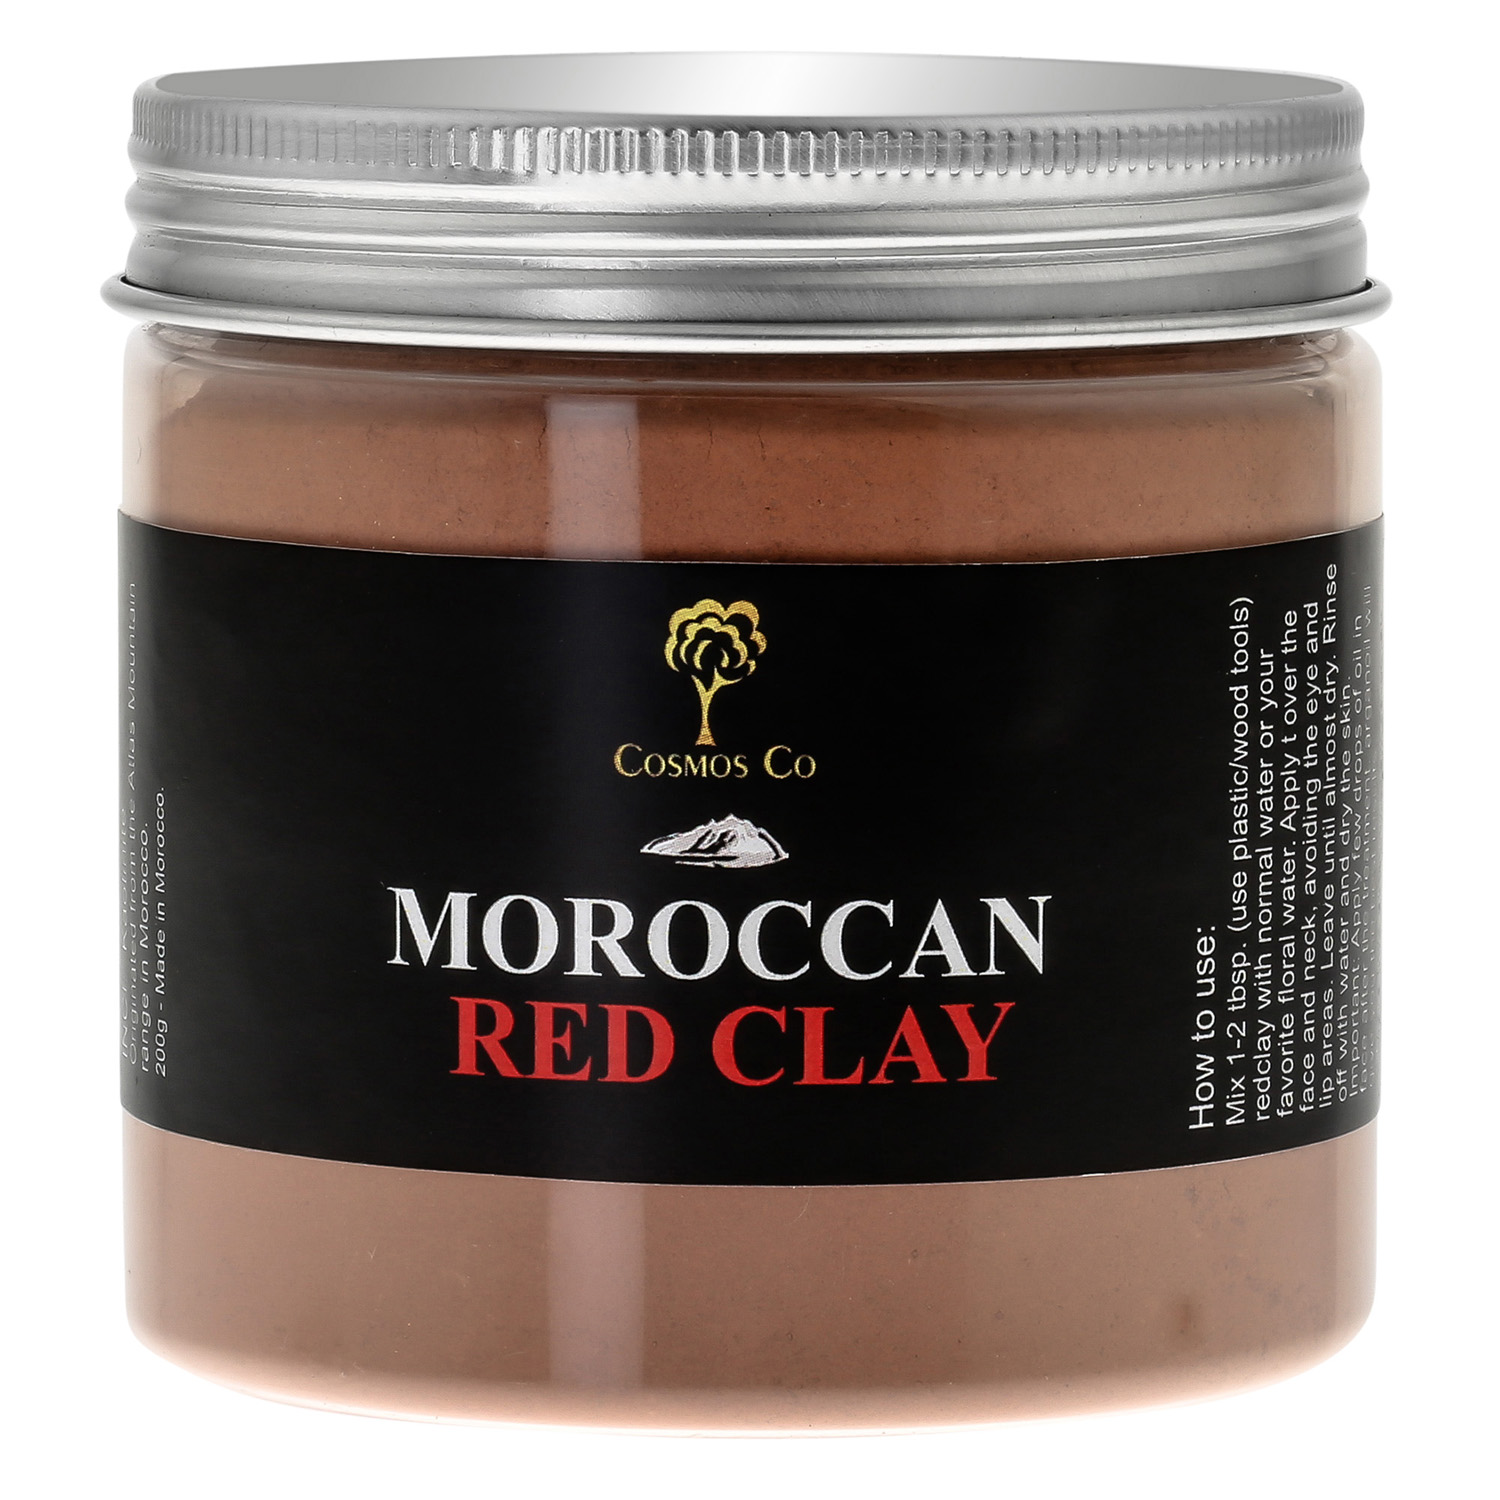 Cosmos-Co-rødt-ler-moroccan-red-clay